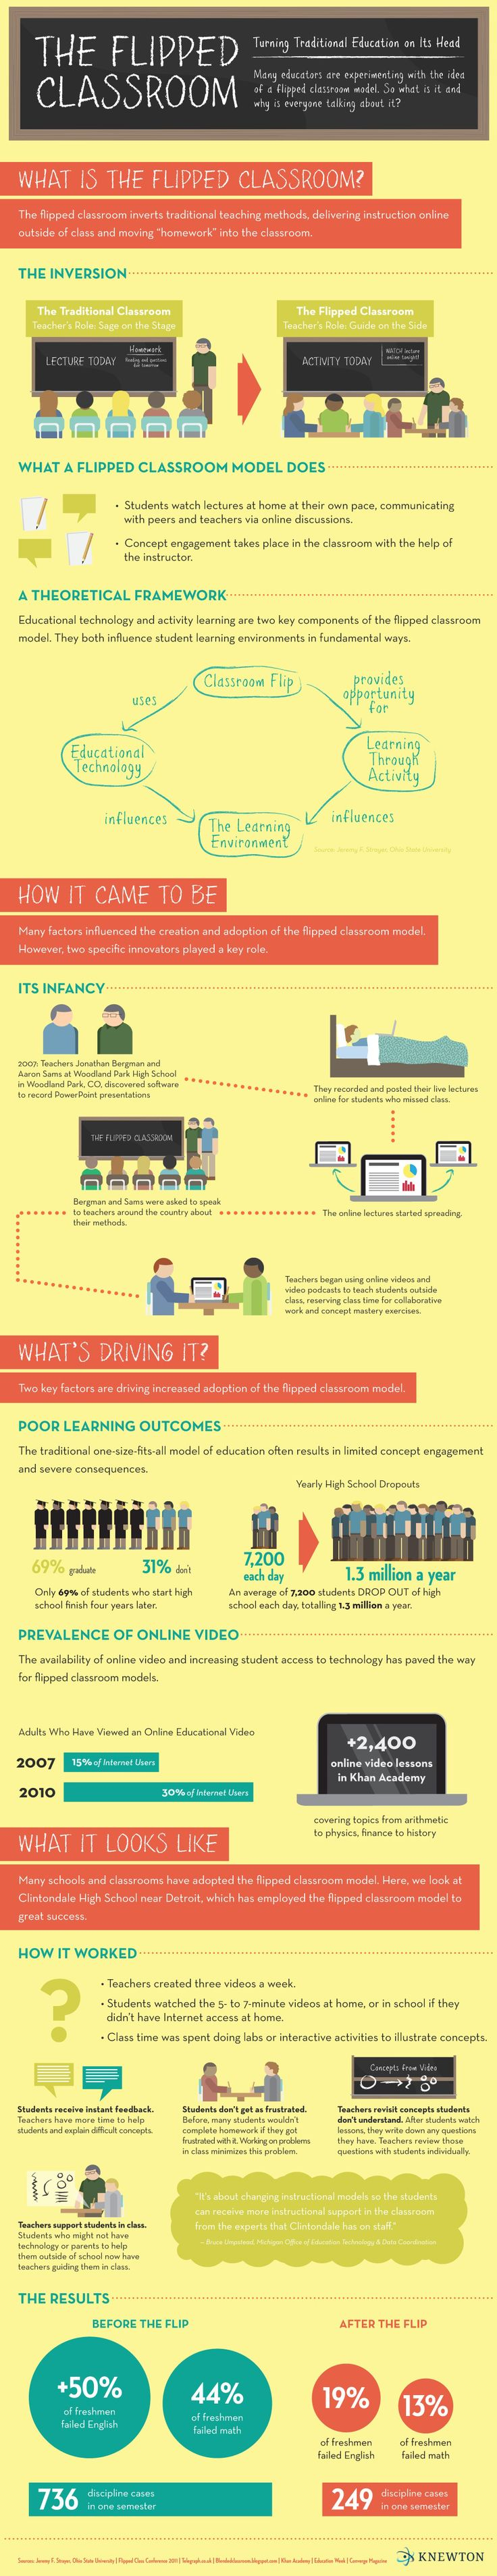 The Flipped Classroom: Turning the Traditional Classroom on its Head